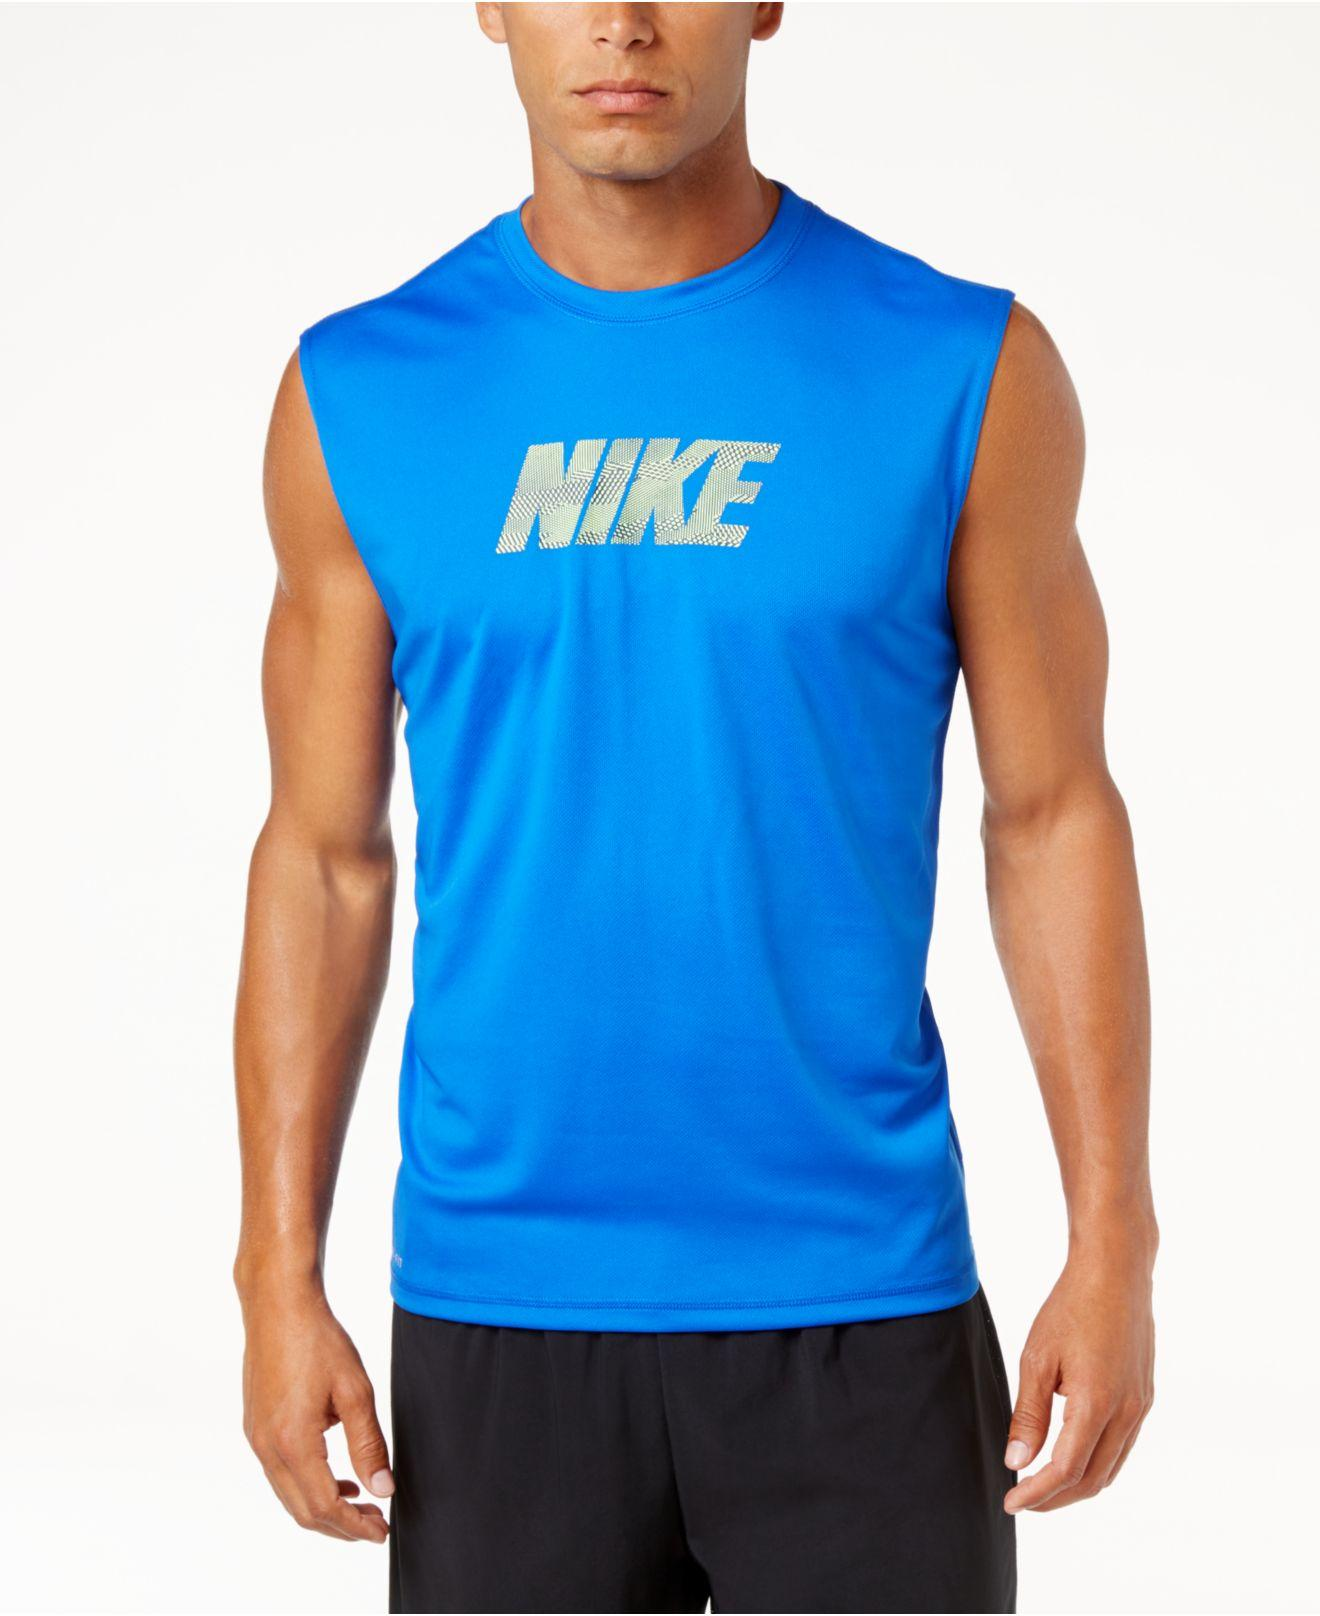 Nike men 39 s graphic print sleeveless t shirt in blue for for Sleeveless graphic t shirts